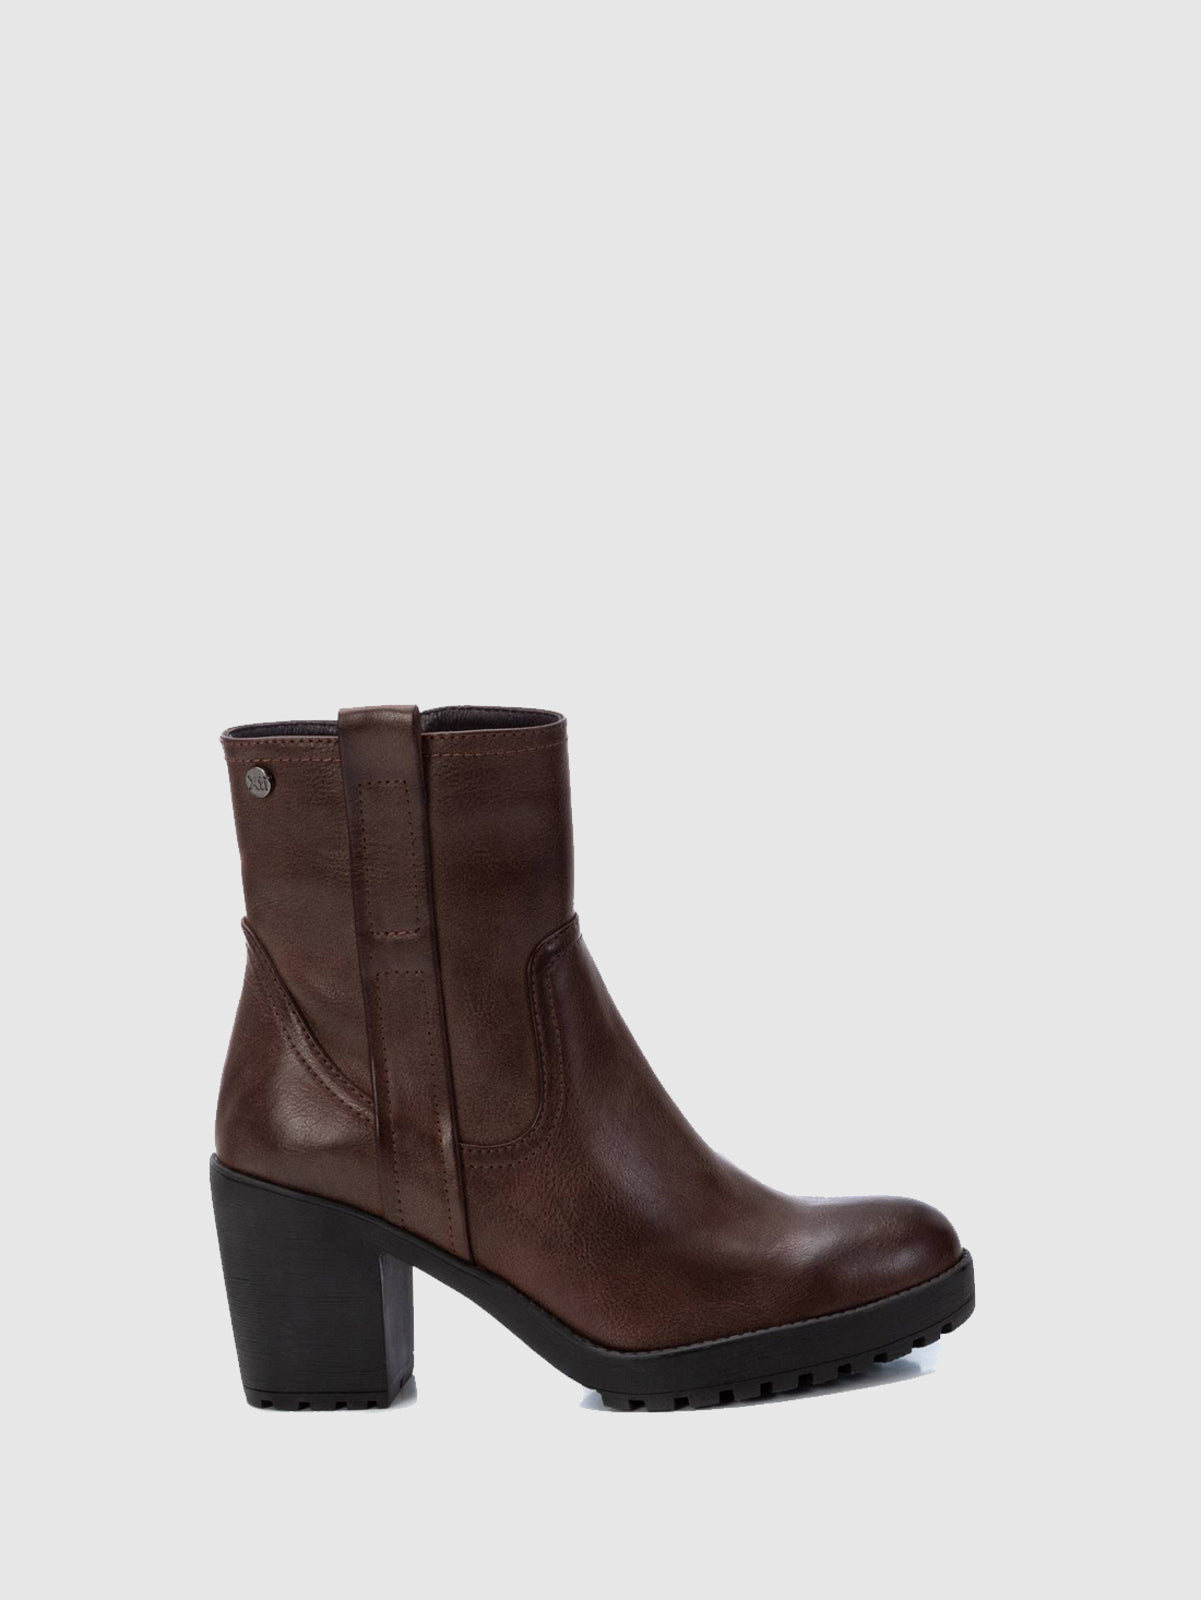 XTI Basic DarkBrown Zip Up Ankle Boots